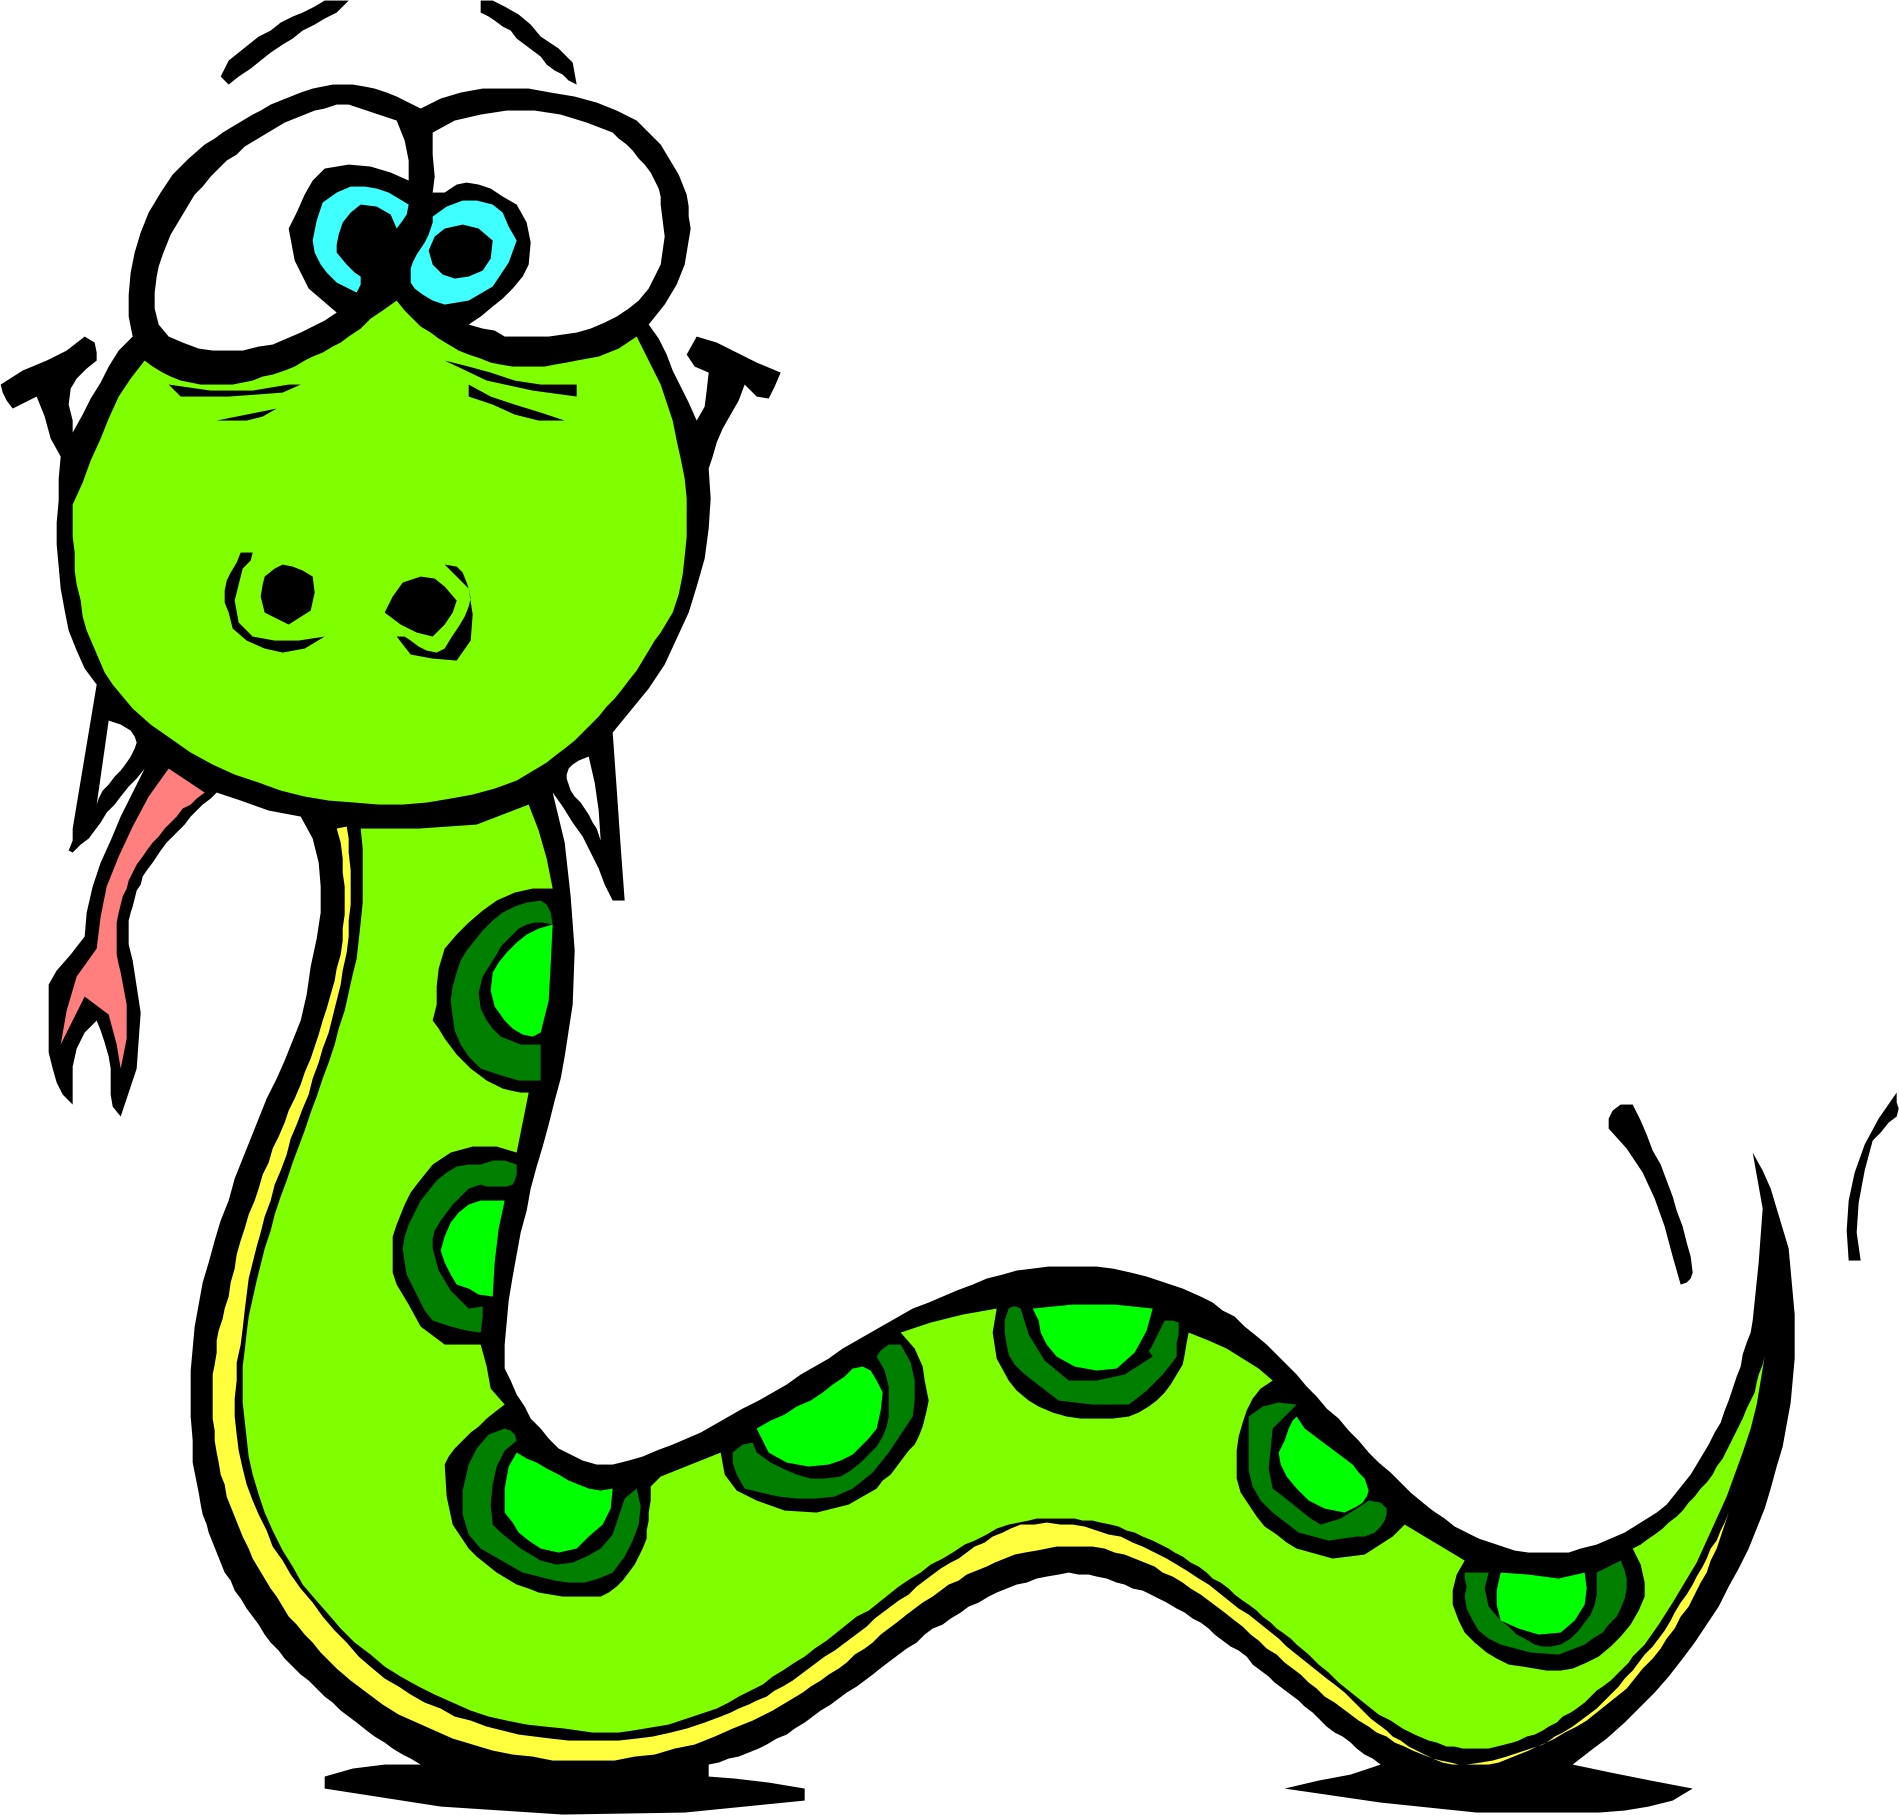 Snake clipart #14, Download drawings